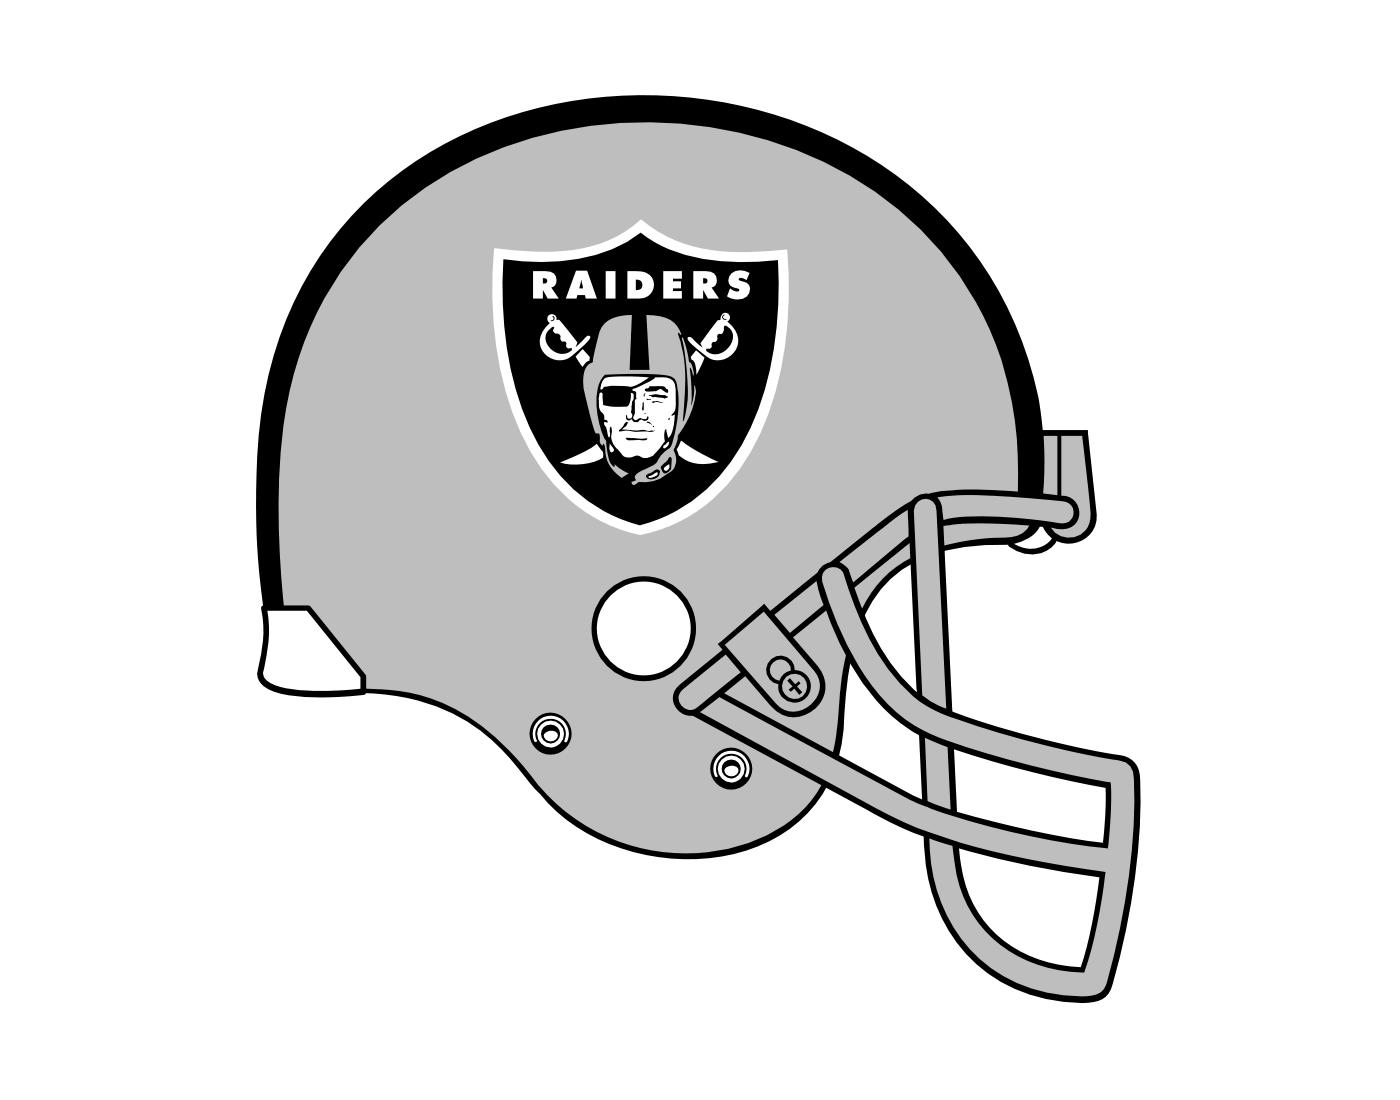 Raiders helmet png. Oakland nfl pittsburgh steelers